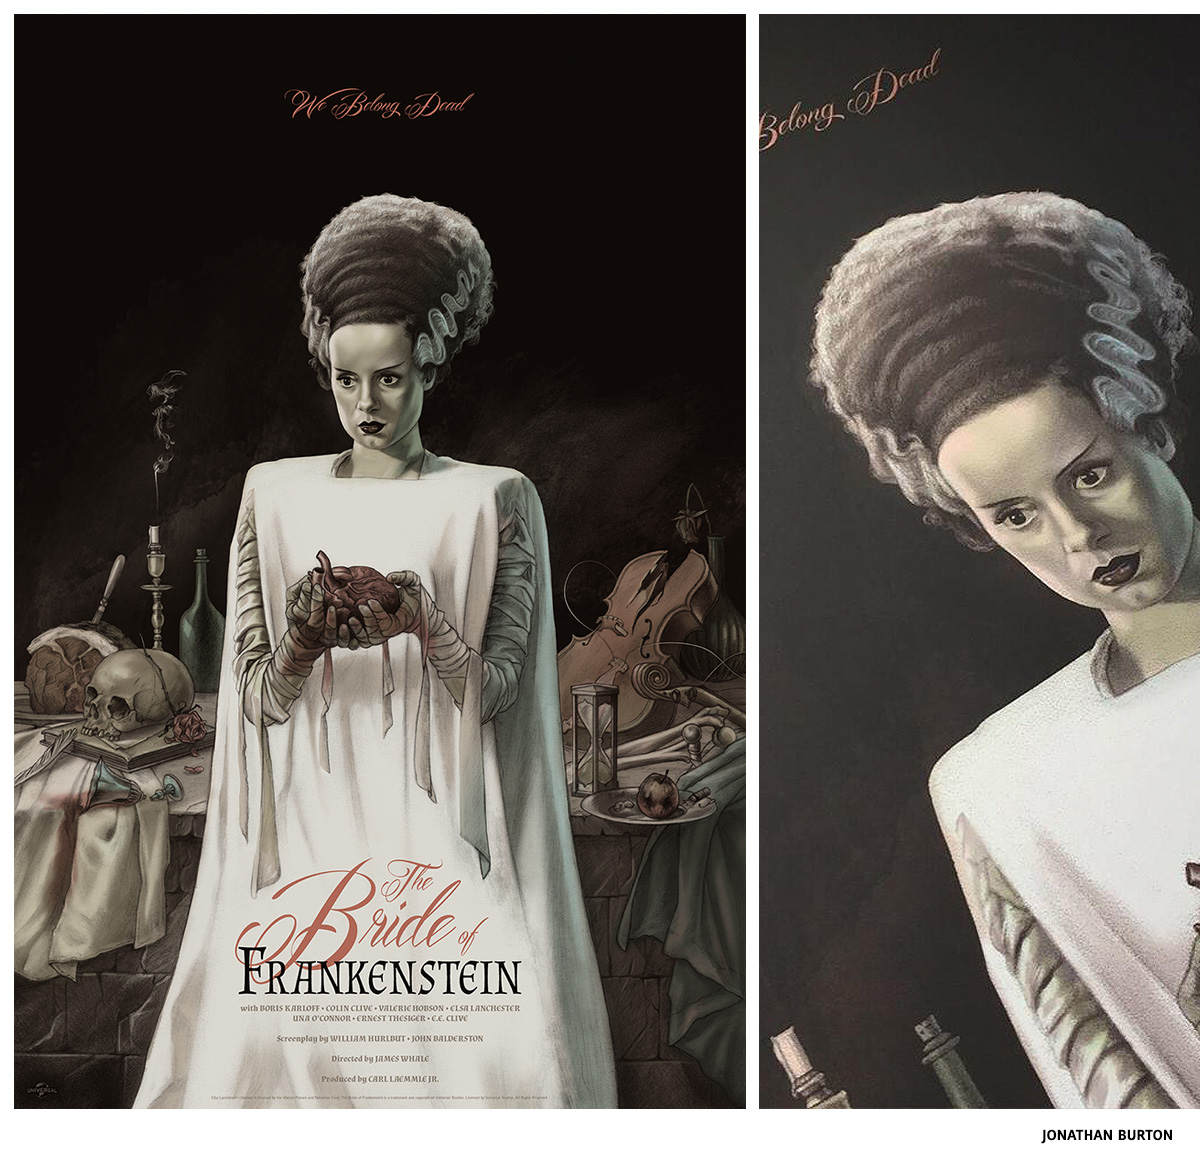 The Bride of Frankenstein par Jonathan Burton sérigraphie affiche